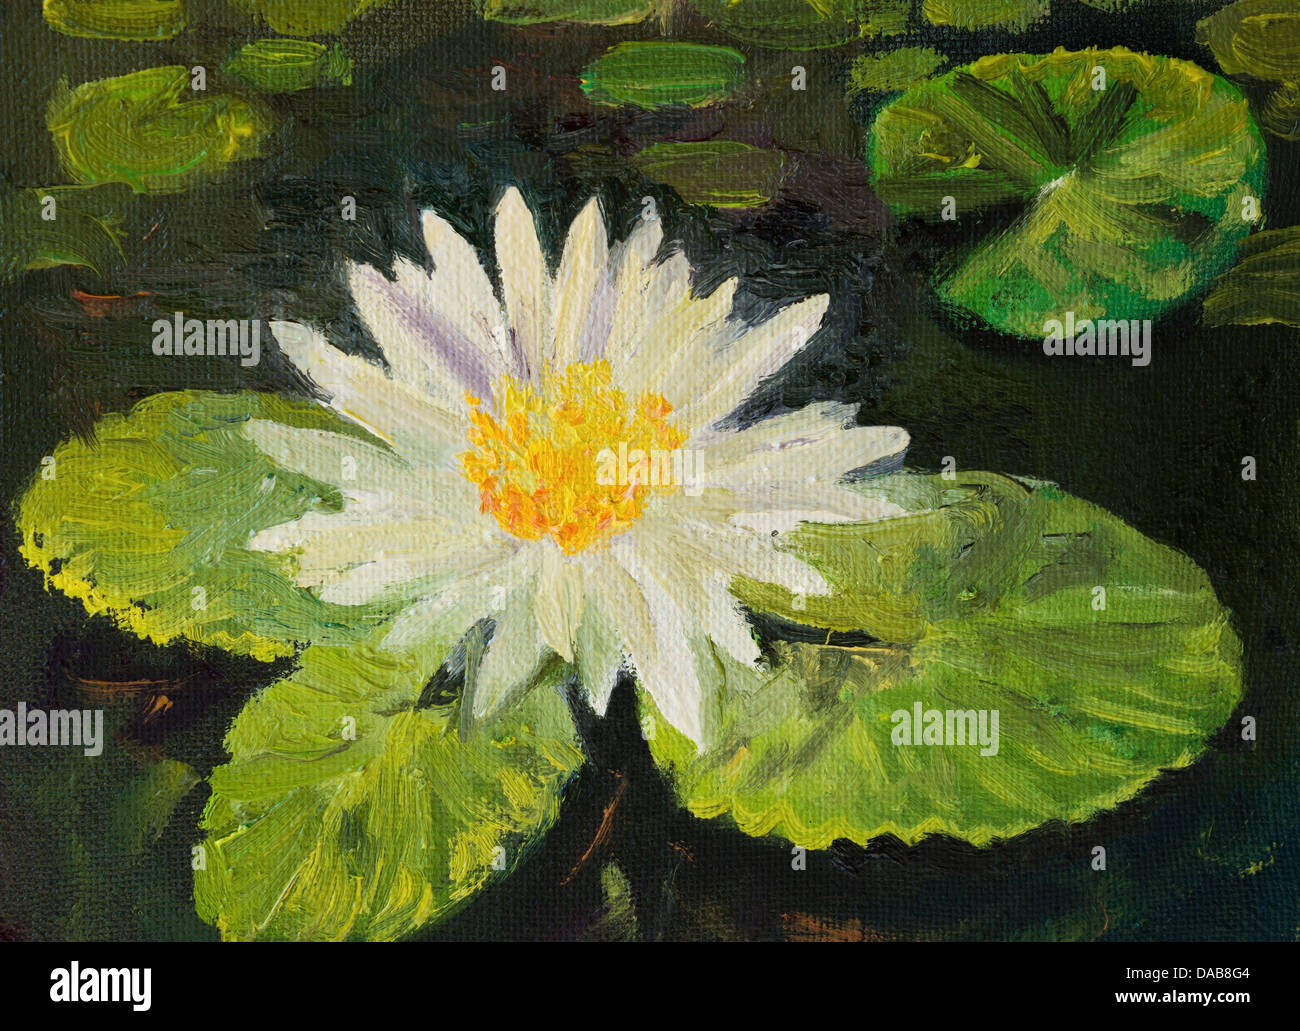 An oil painting on a water lily in a pond with colorful leafs and bright blossom. - Stock Image